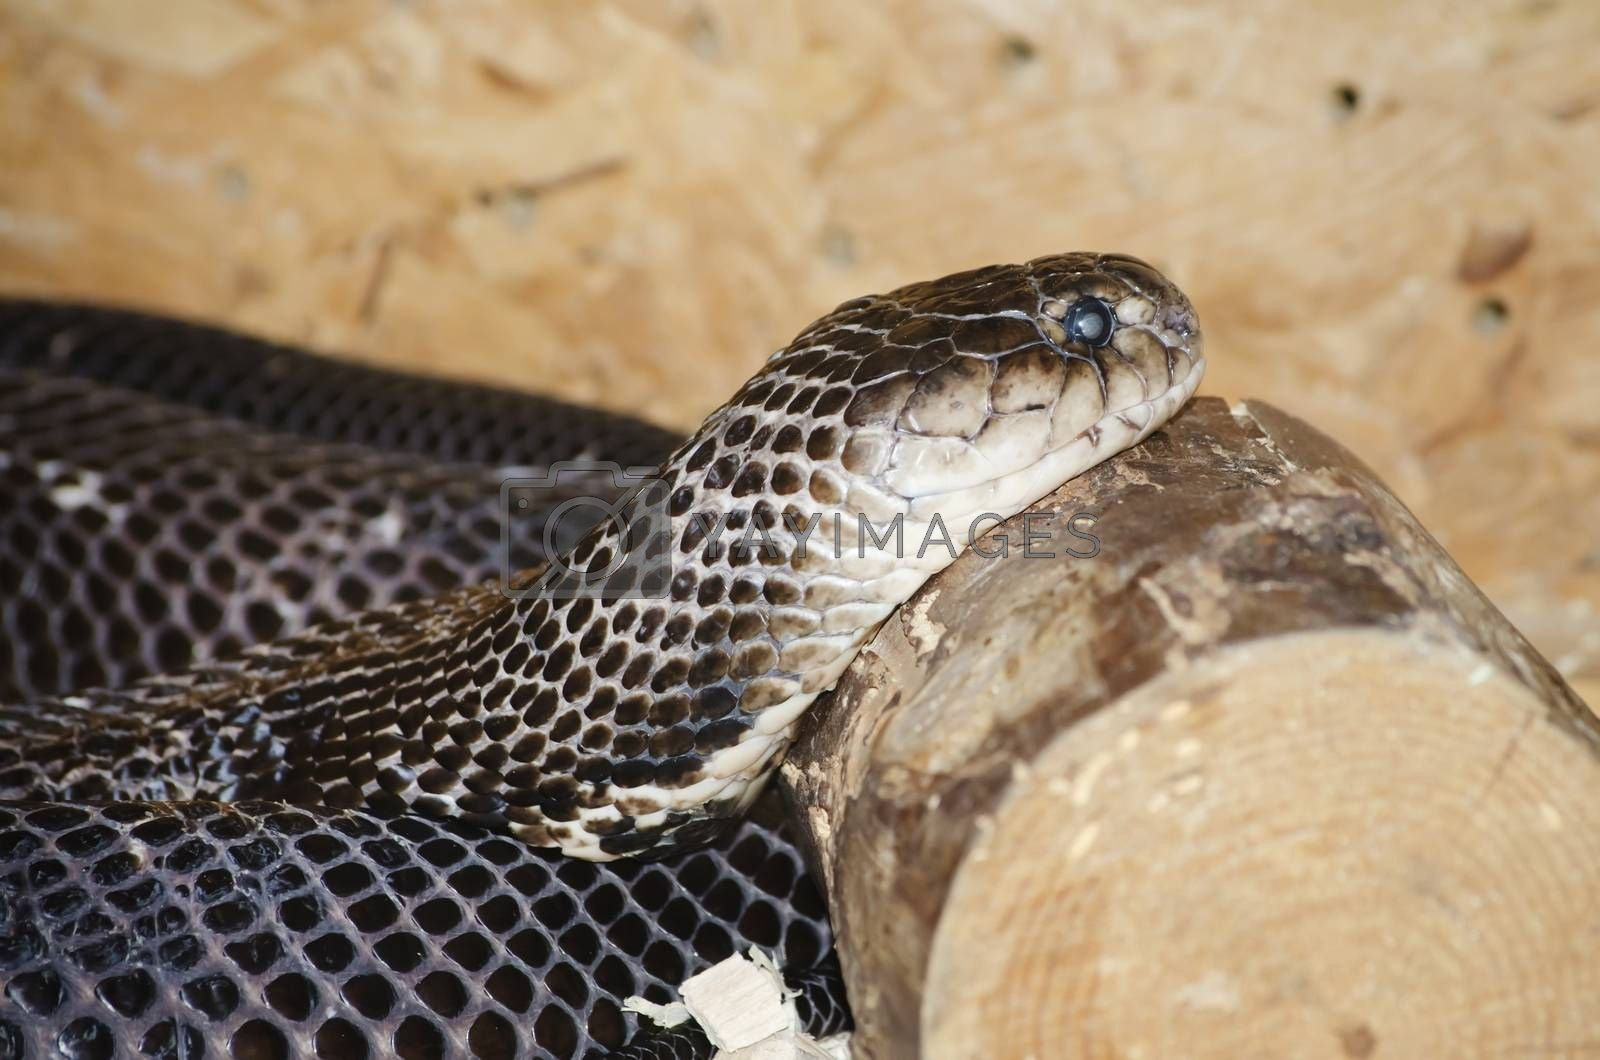 Photo of the Ringhals (South African Spitting Cobra)